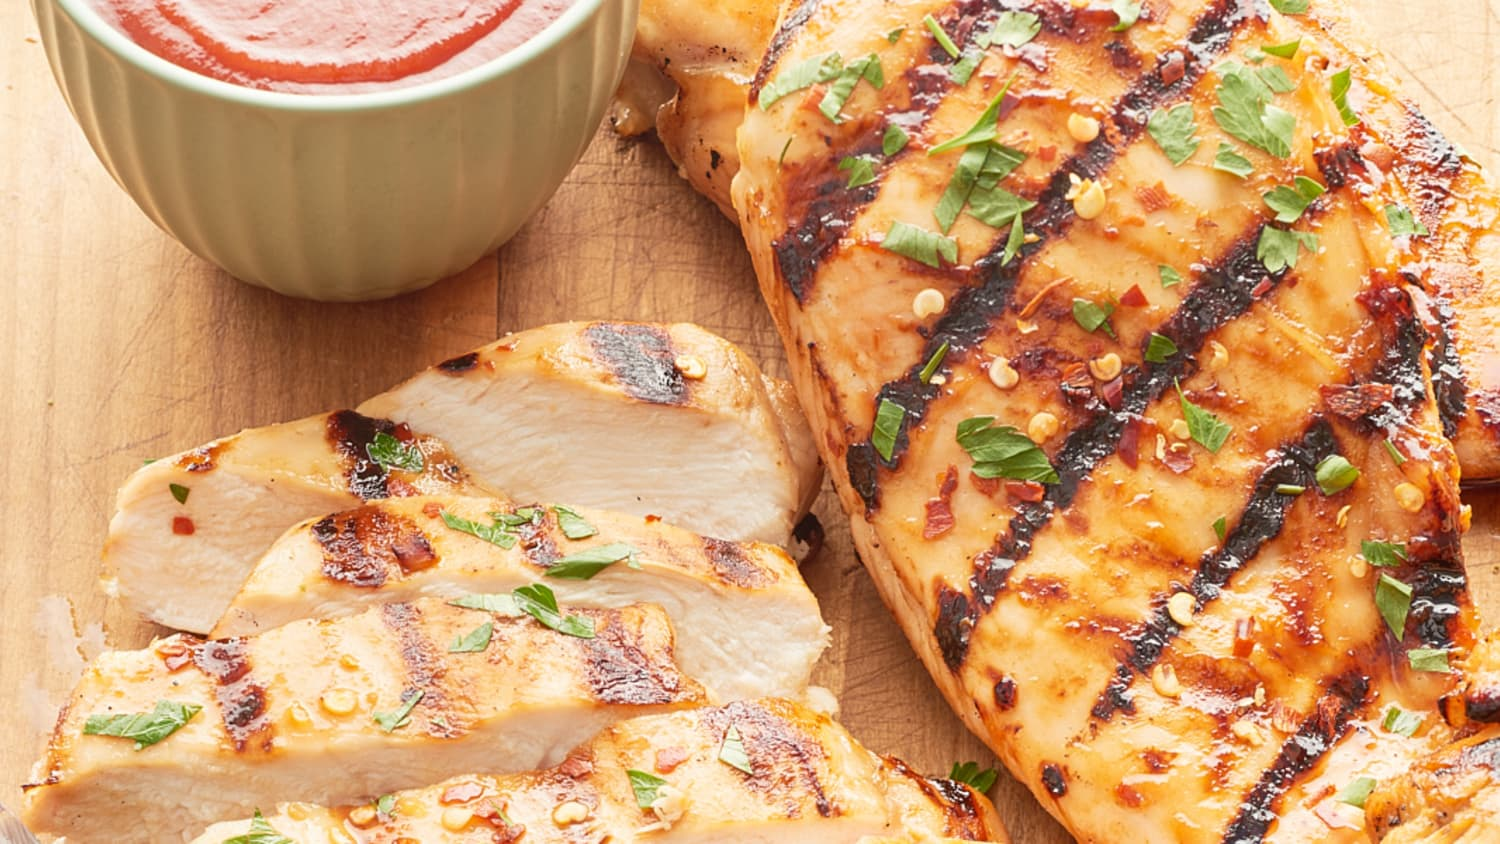 How To Make Juicy, Flavorful Grilled Chicken Breast | Kitchn